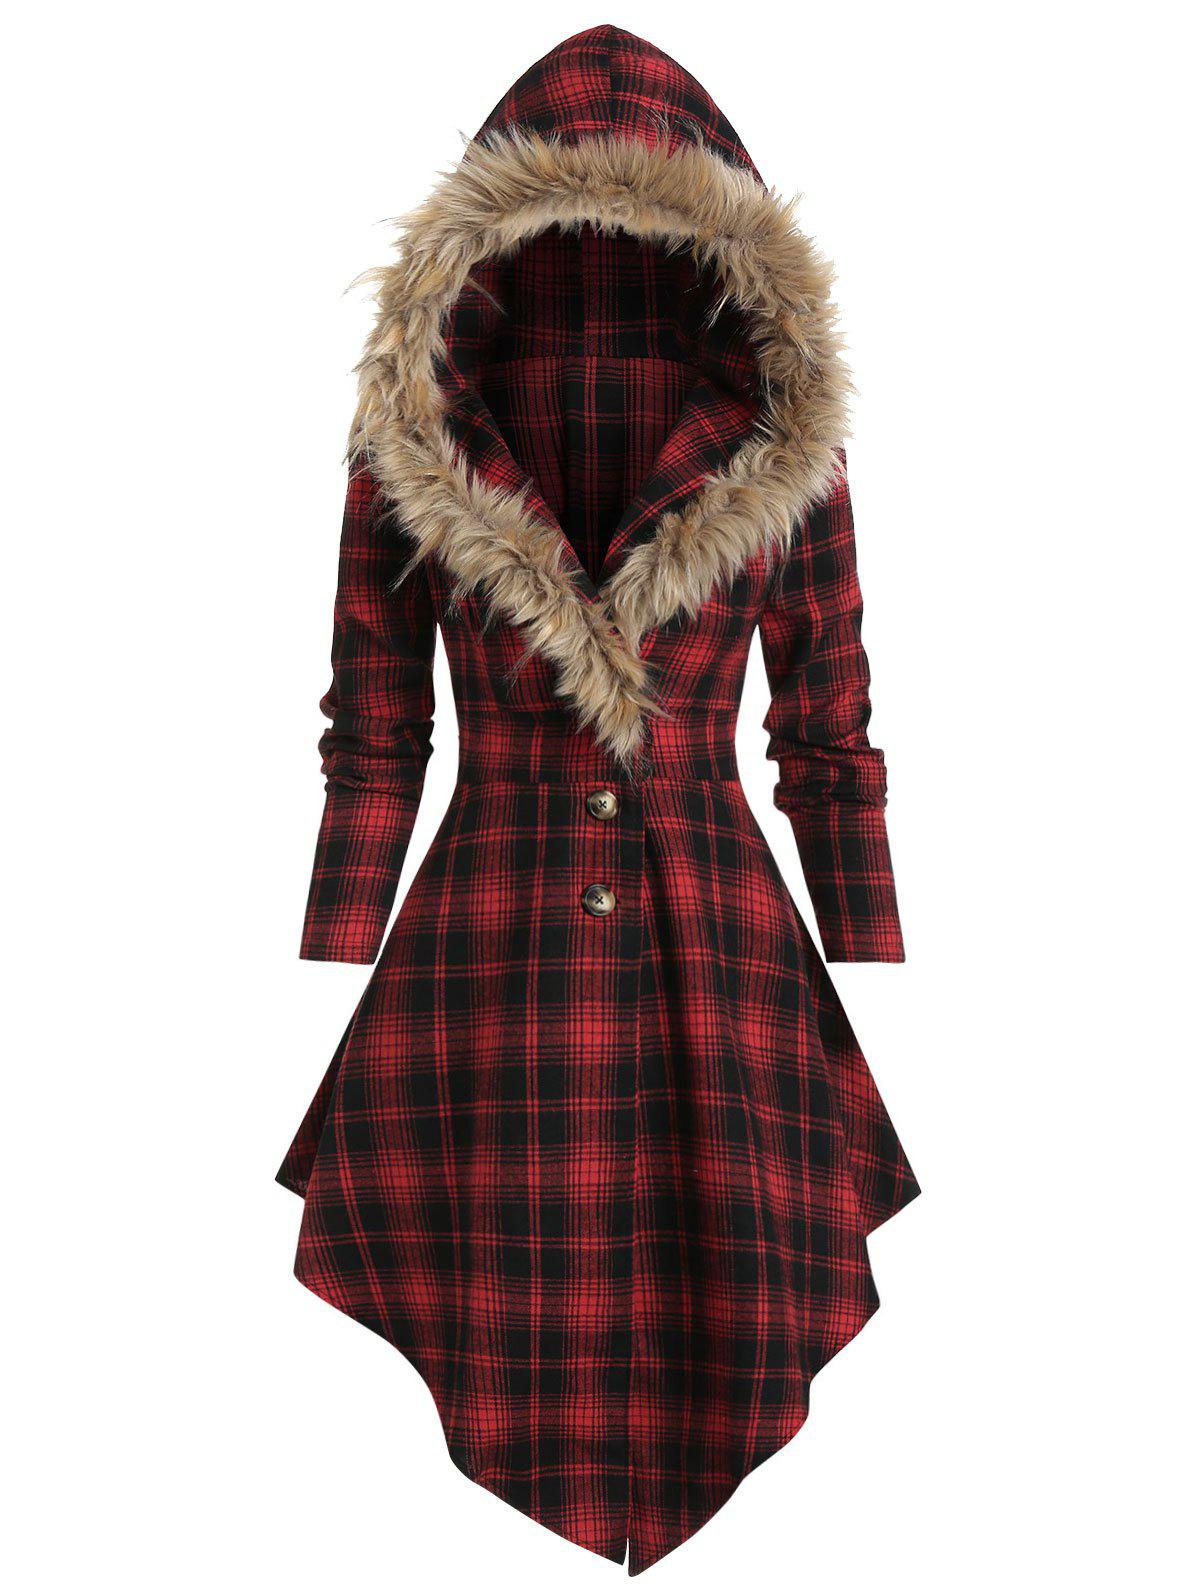 Fashion Plaid Print Lace-up Skirted Coat with Faux Fur Hood